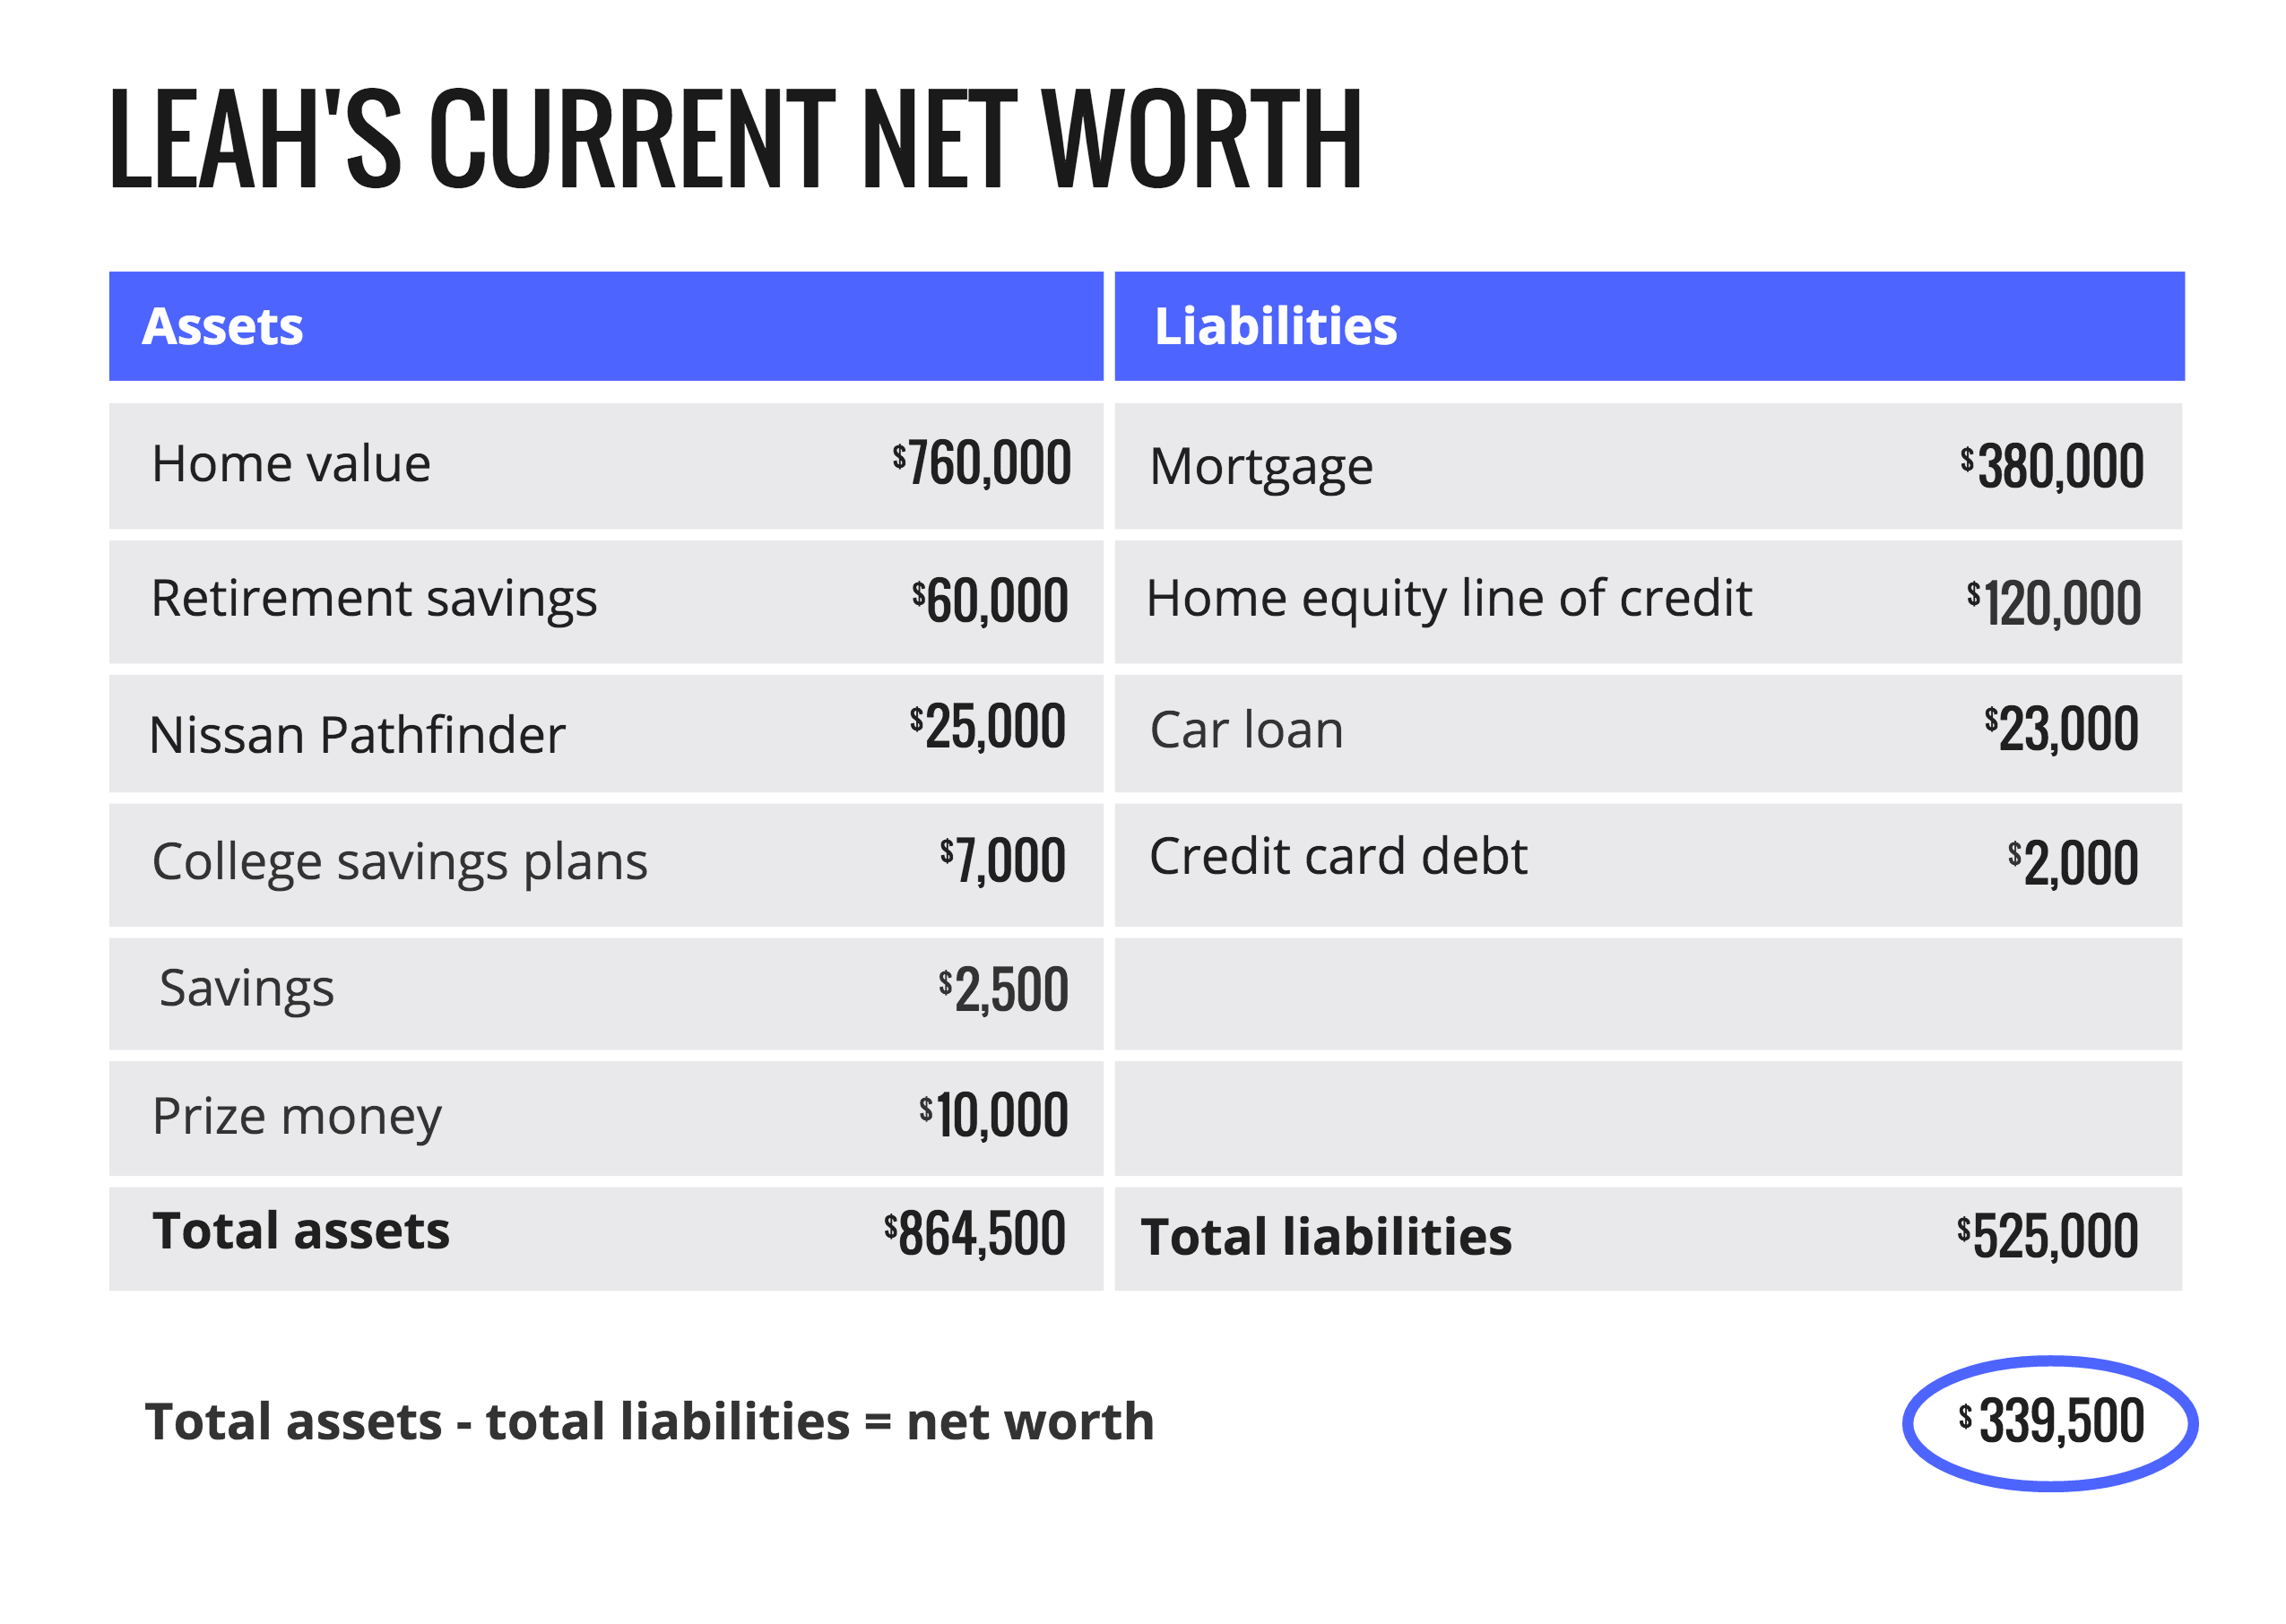 Leah's current net worth